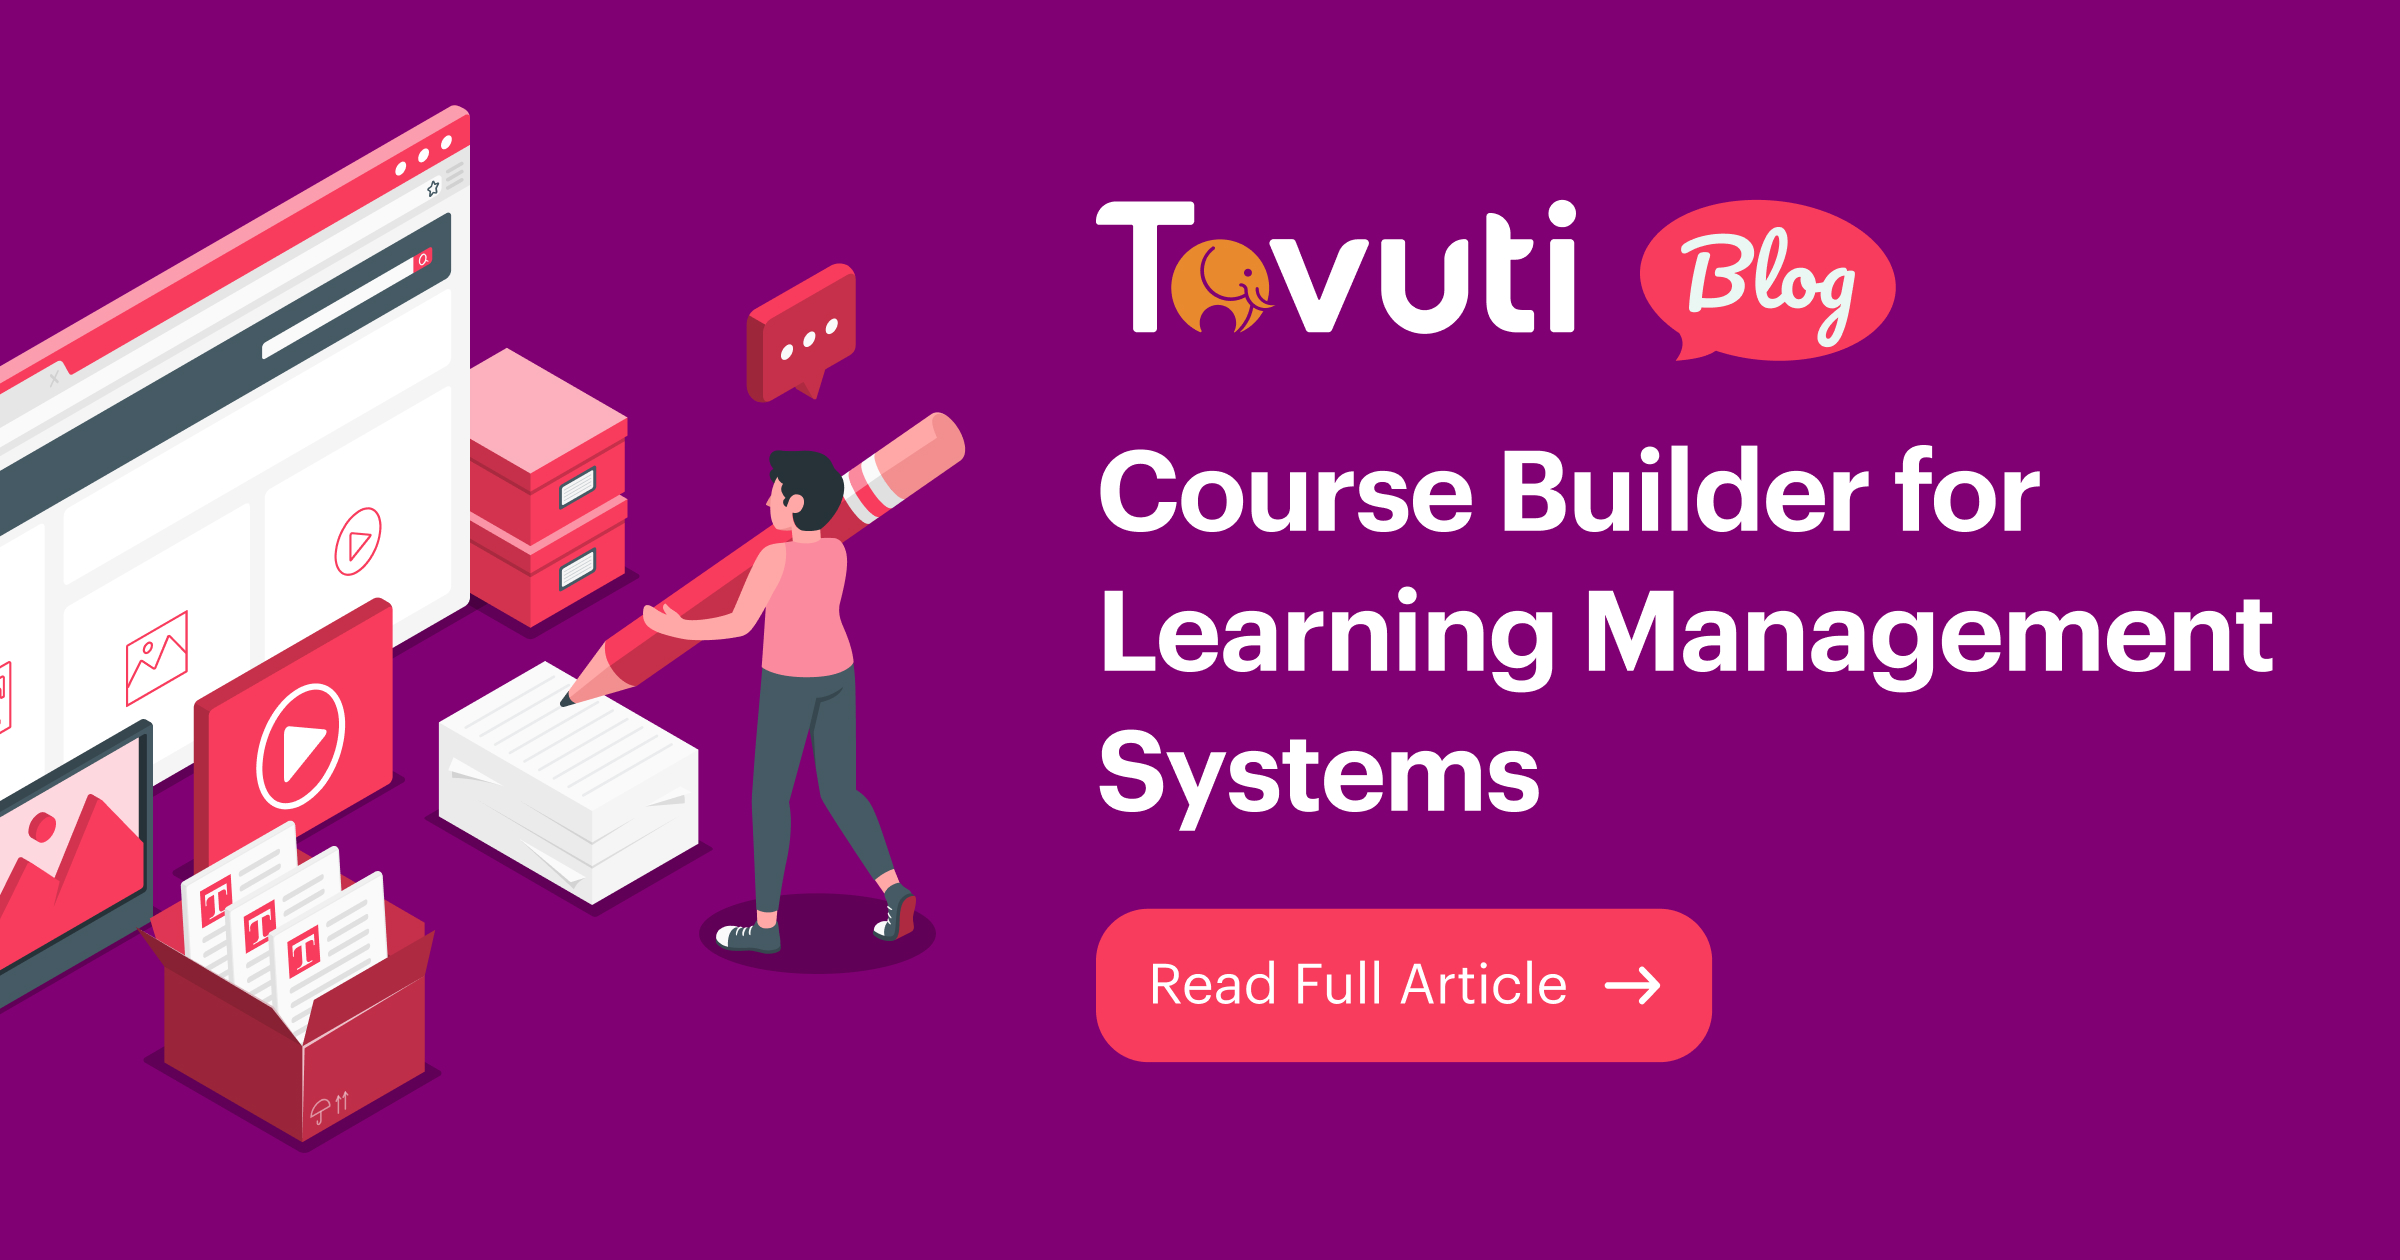 Course Builder for Learning Management Systems